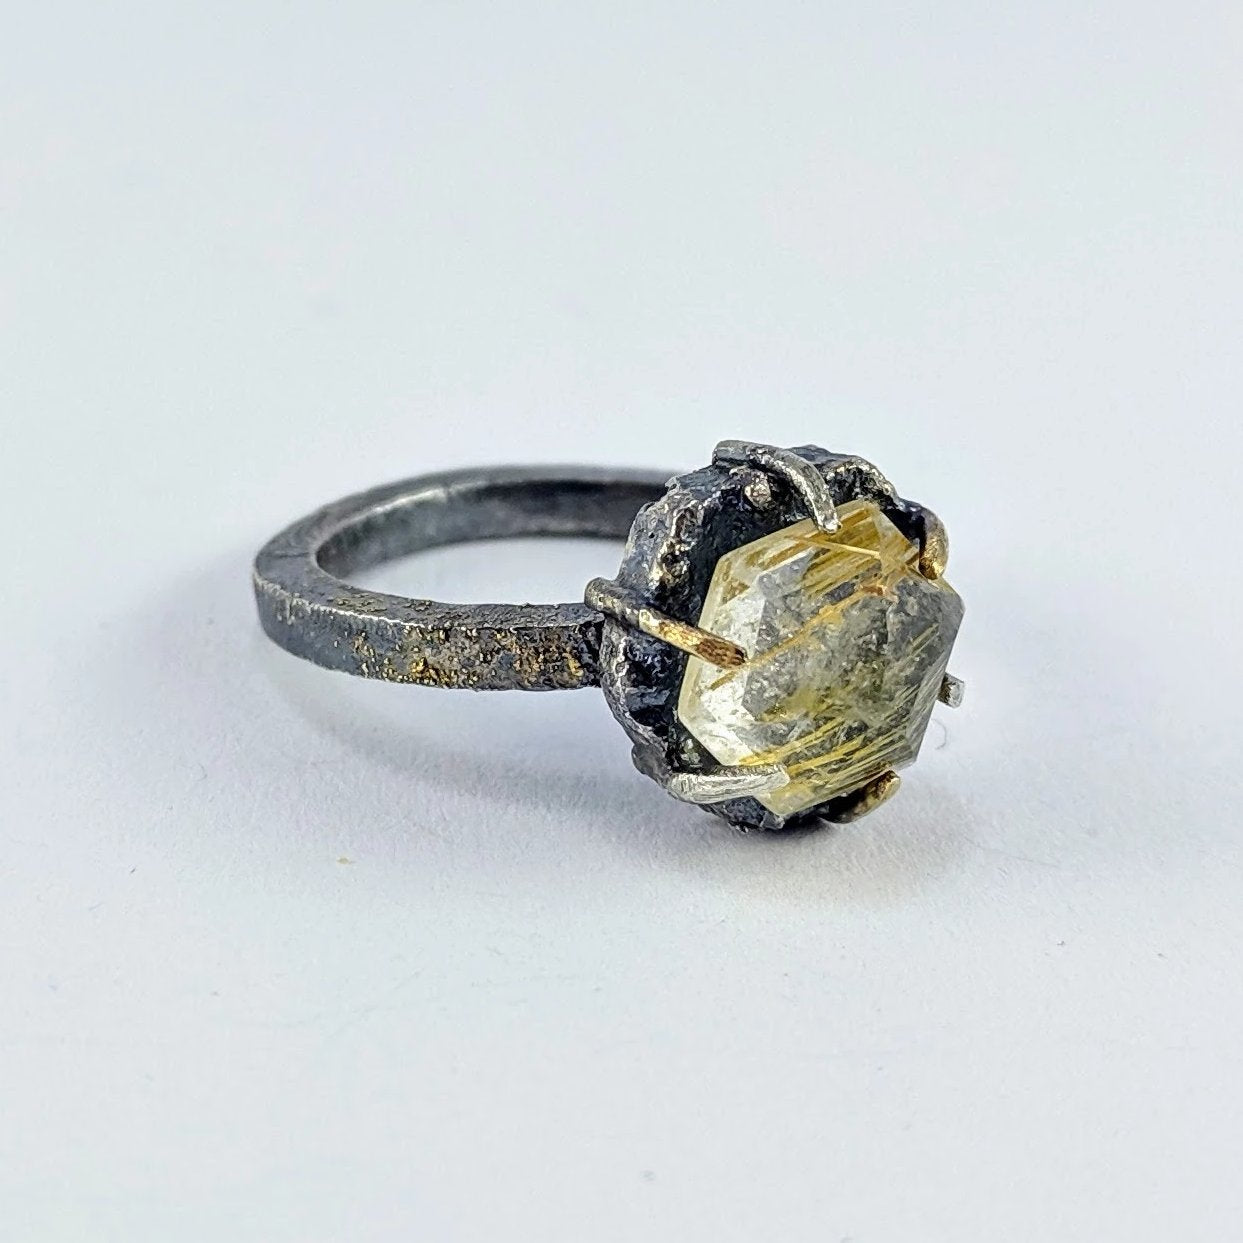 Future Artefact ring with rutilated quartz